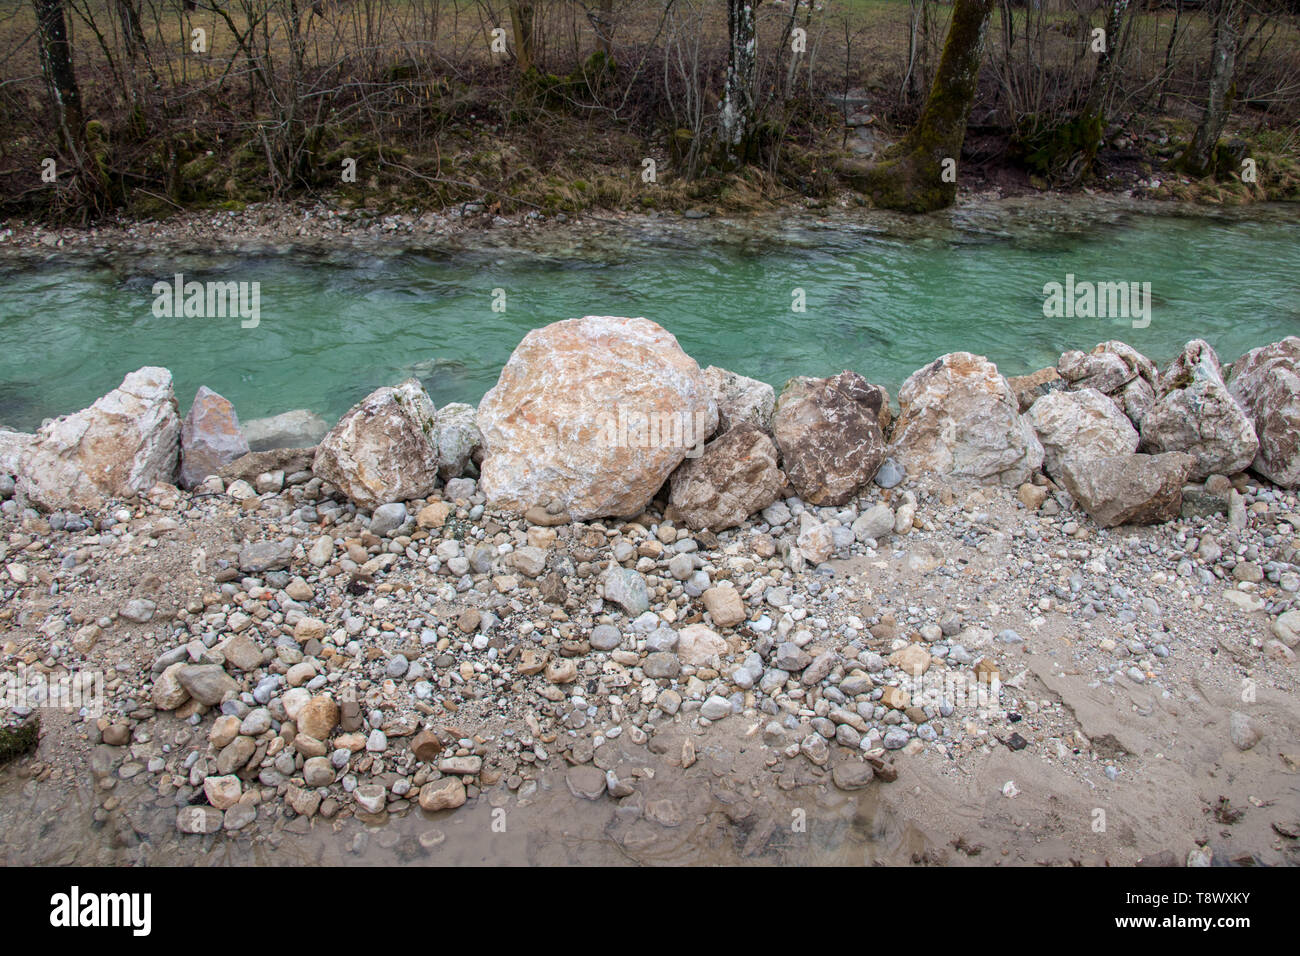 rocks in front of river - Stock Image